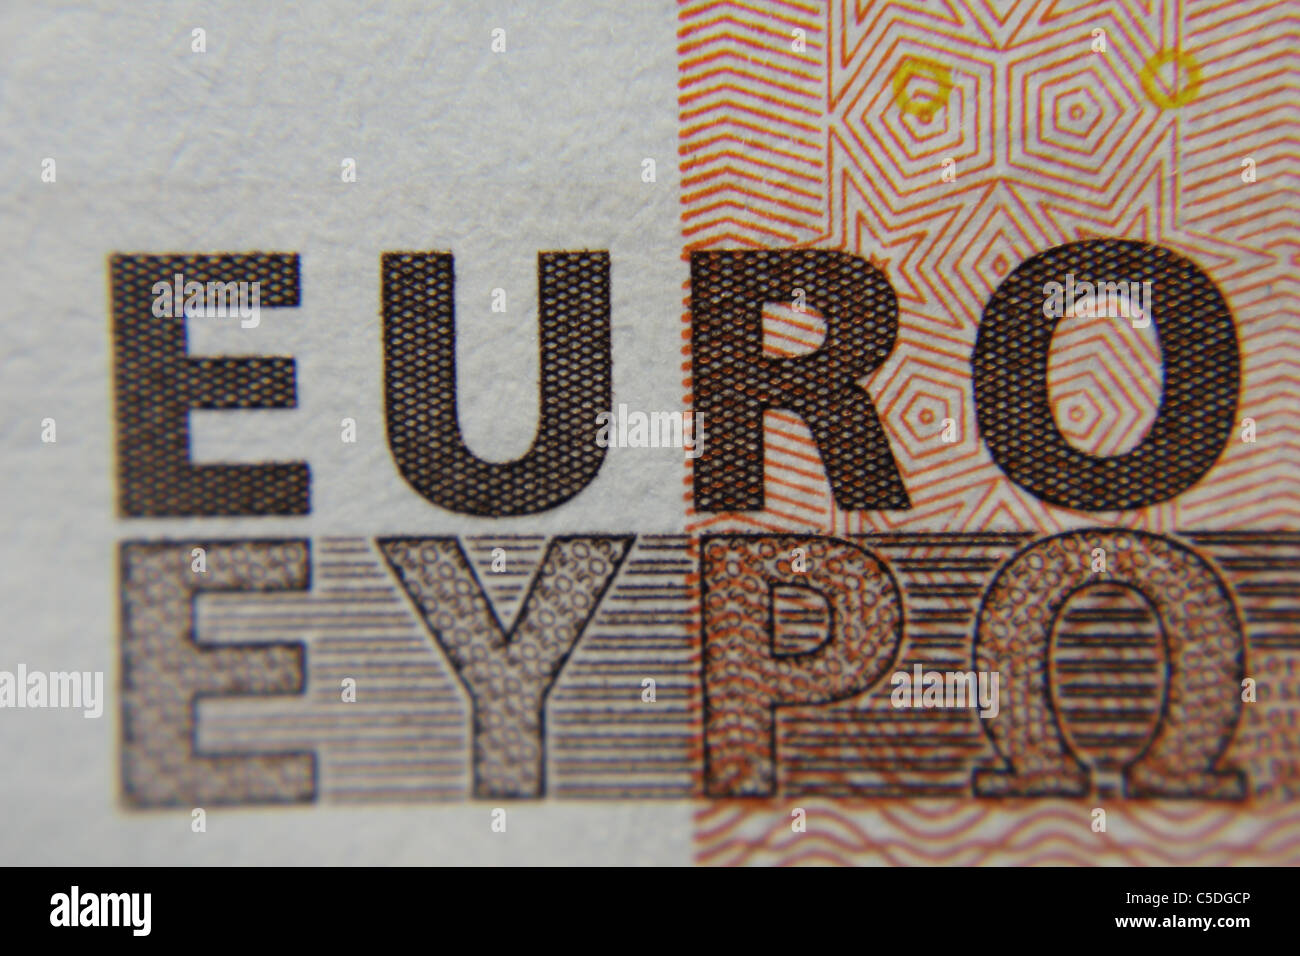 close up of a 50 Euro note showing the word EURO - Stock Image